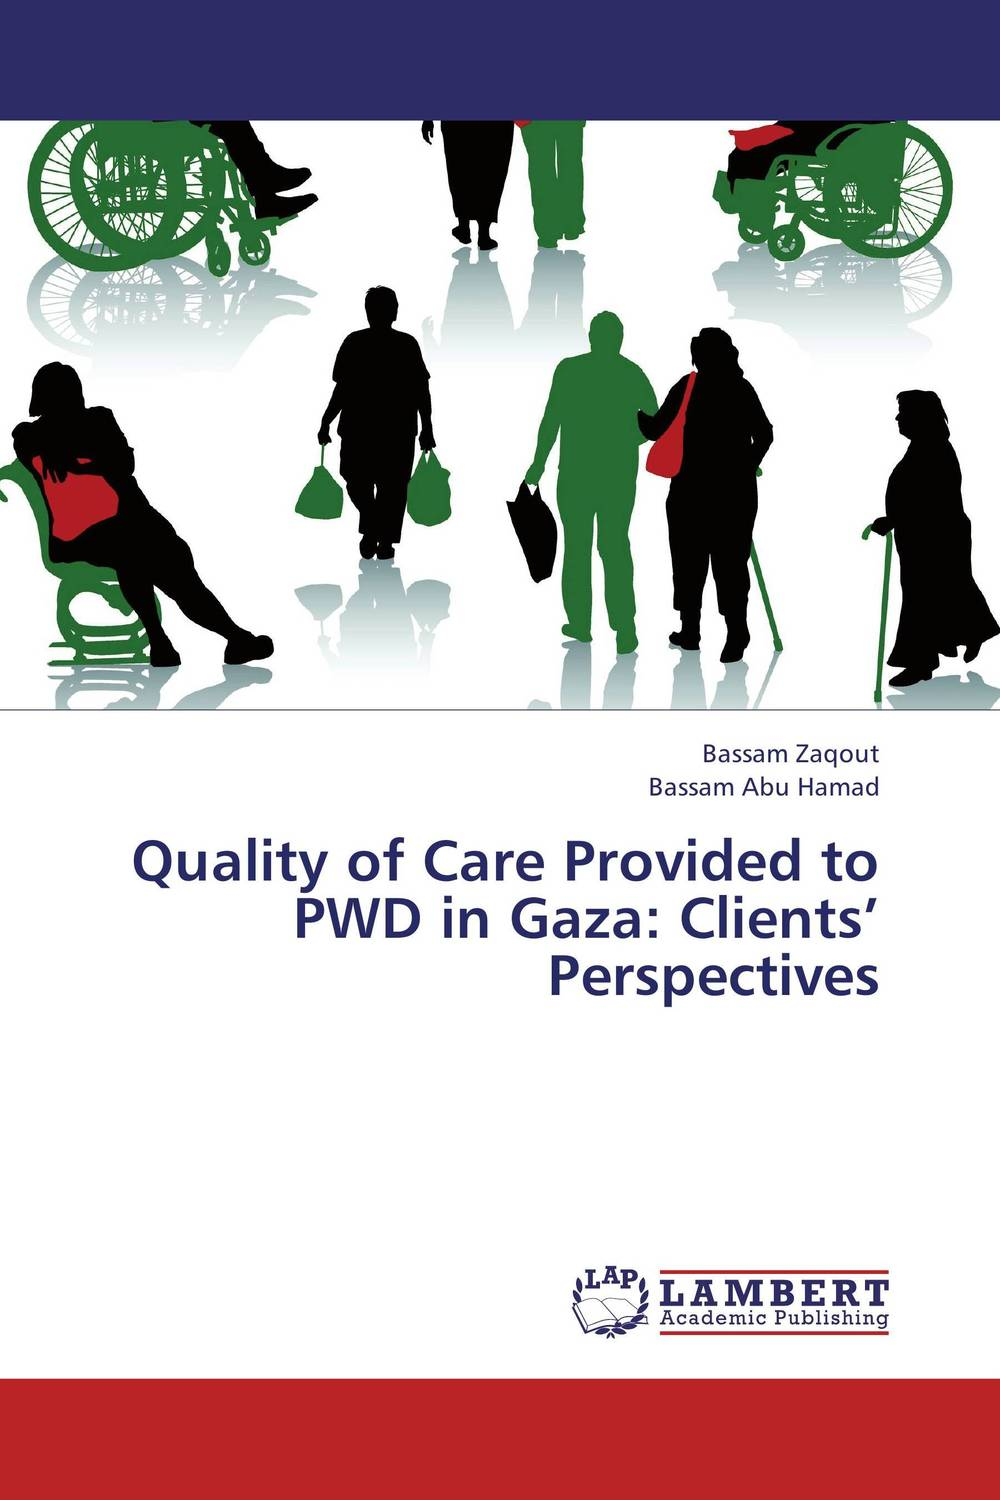 Quality of Care Provided to PWD in Gaza: Clients' Perspectives barriers to health care utilization and quality of life